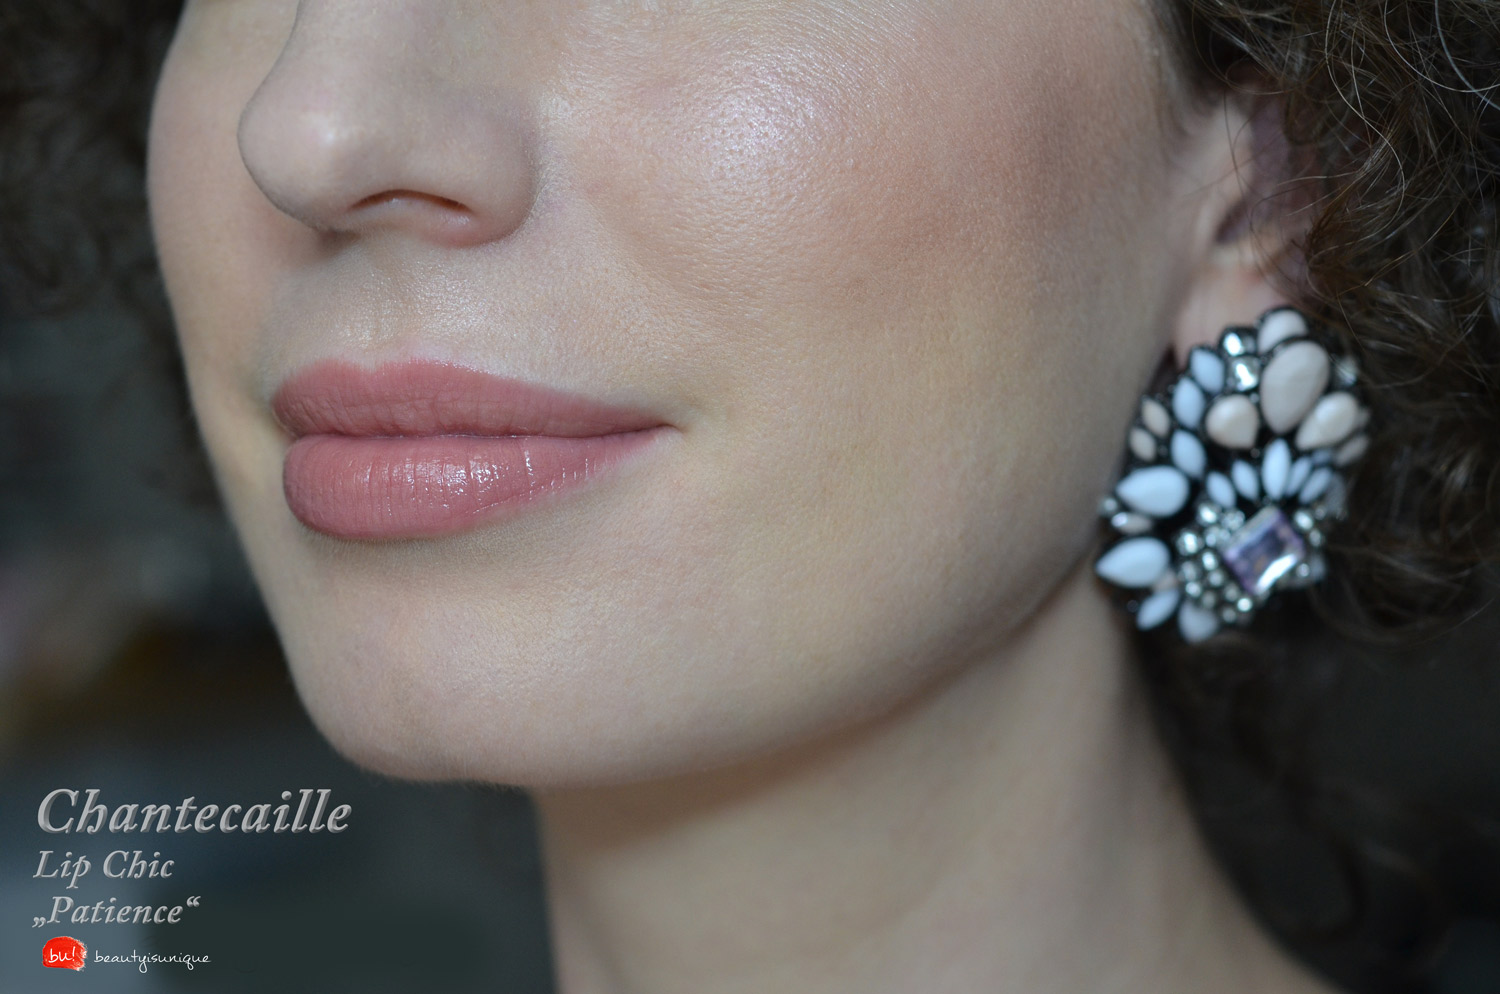 chantecaille-patience-lip-chic-swatches